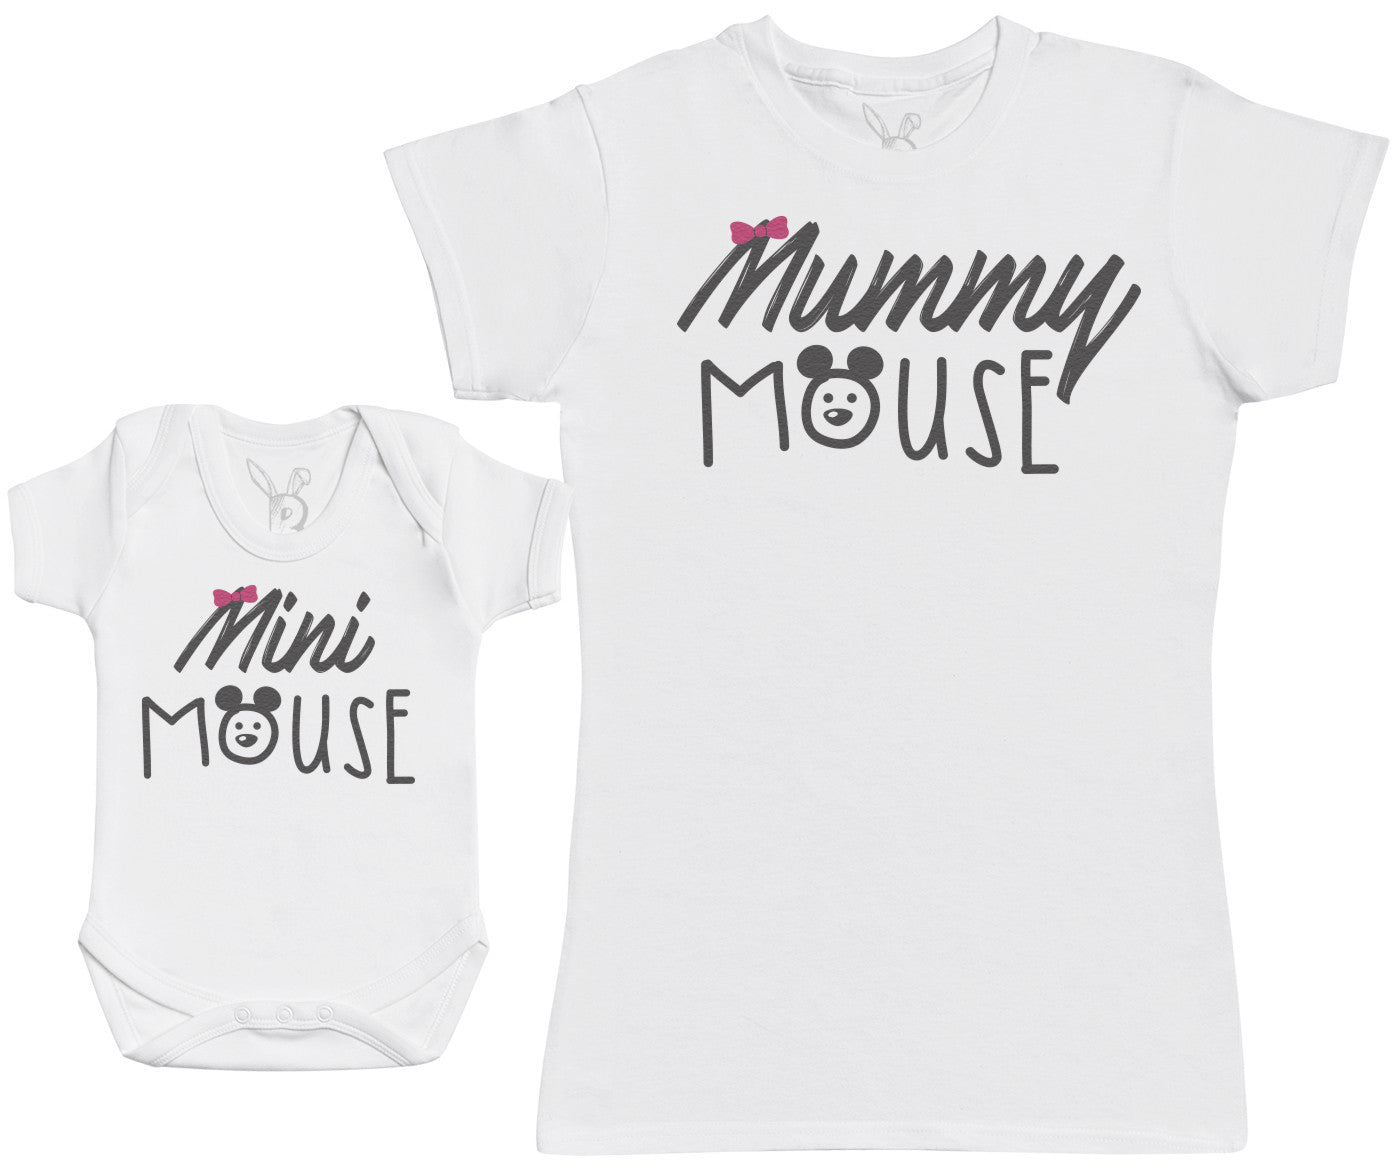 Mini Mouse - Baby Gift Set with Baby Bodysuit & Mother's T-Shirt